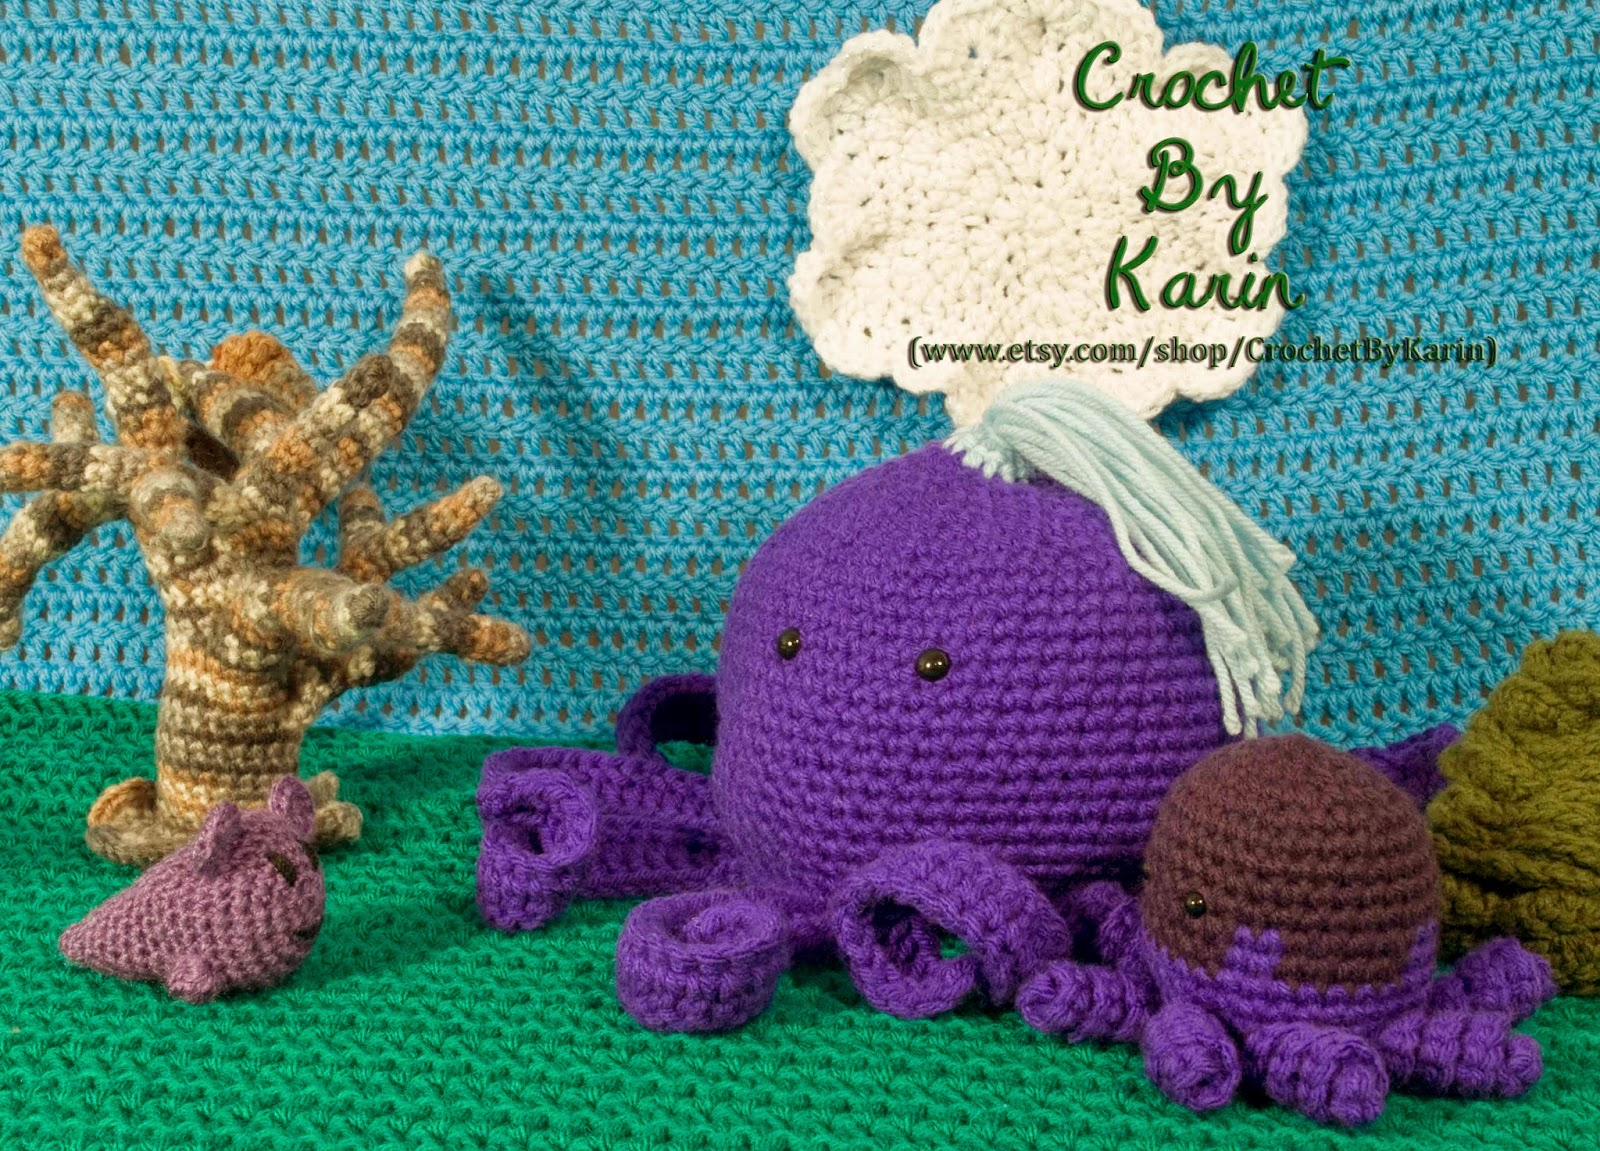 CrochetByKarin: Crochet Monster Dating Problems